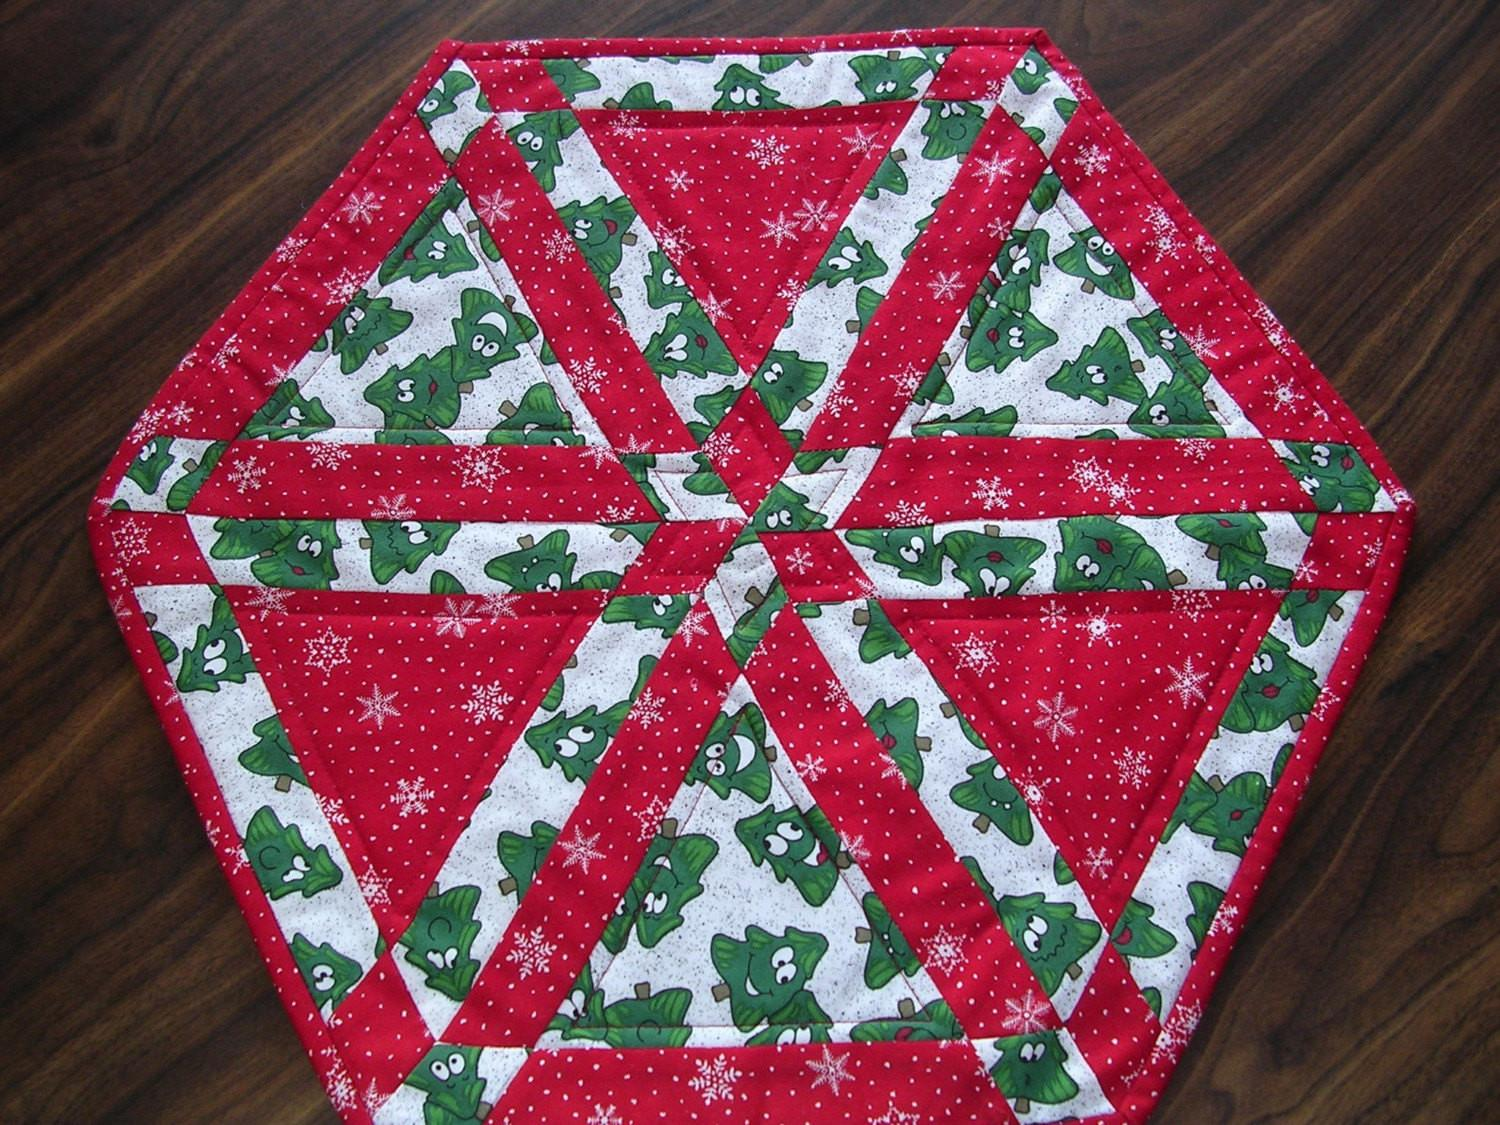 Whimsical Christmas Tree Table Topper Quiltedkitchen